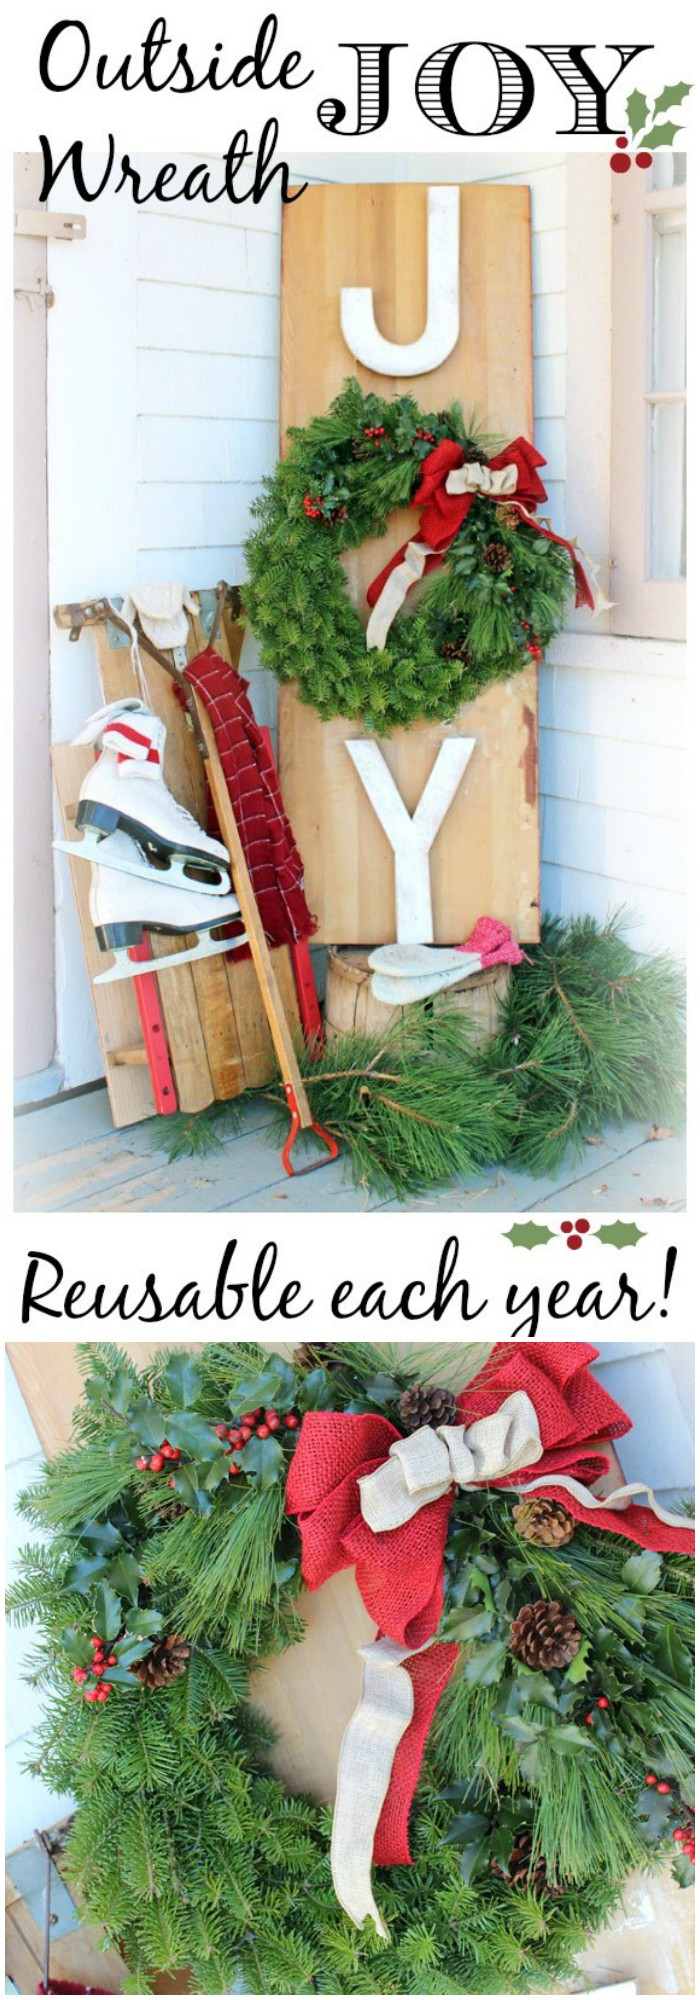 21 Cheap DIY Outdoor Christmas Decorations | DIY Home Decor on Easy Diy Garden Decor id=89409